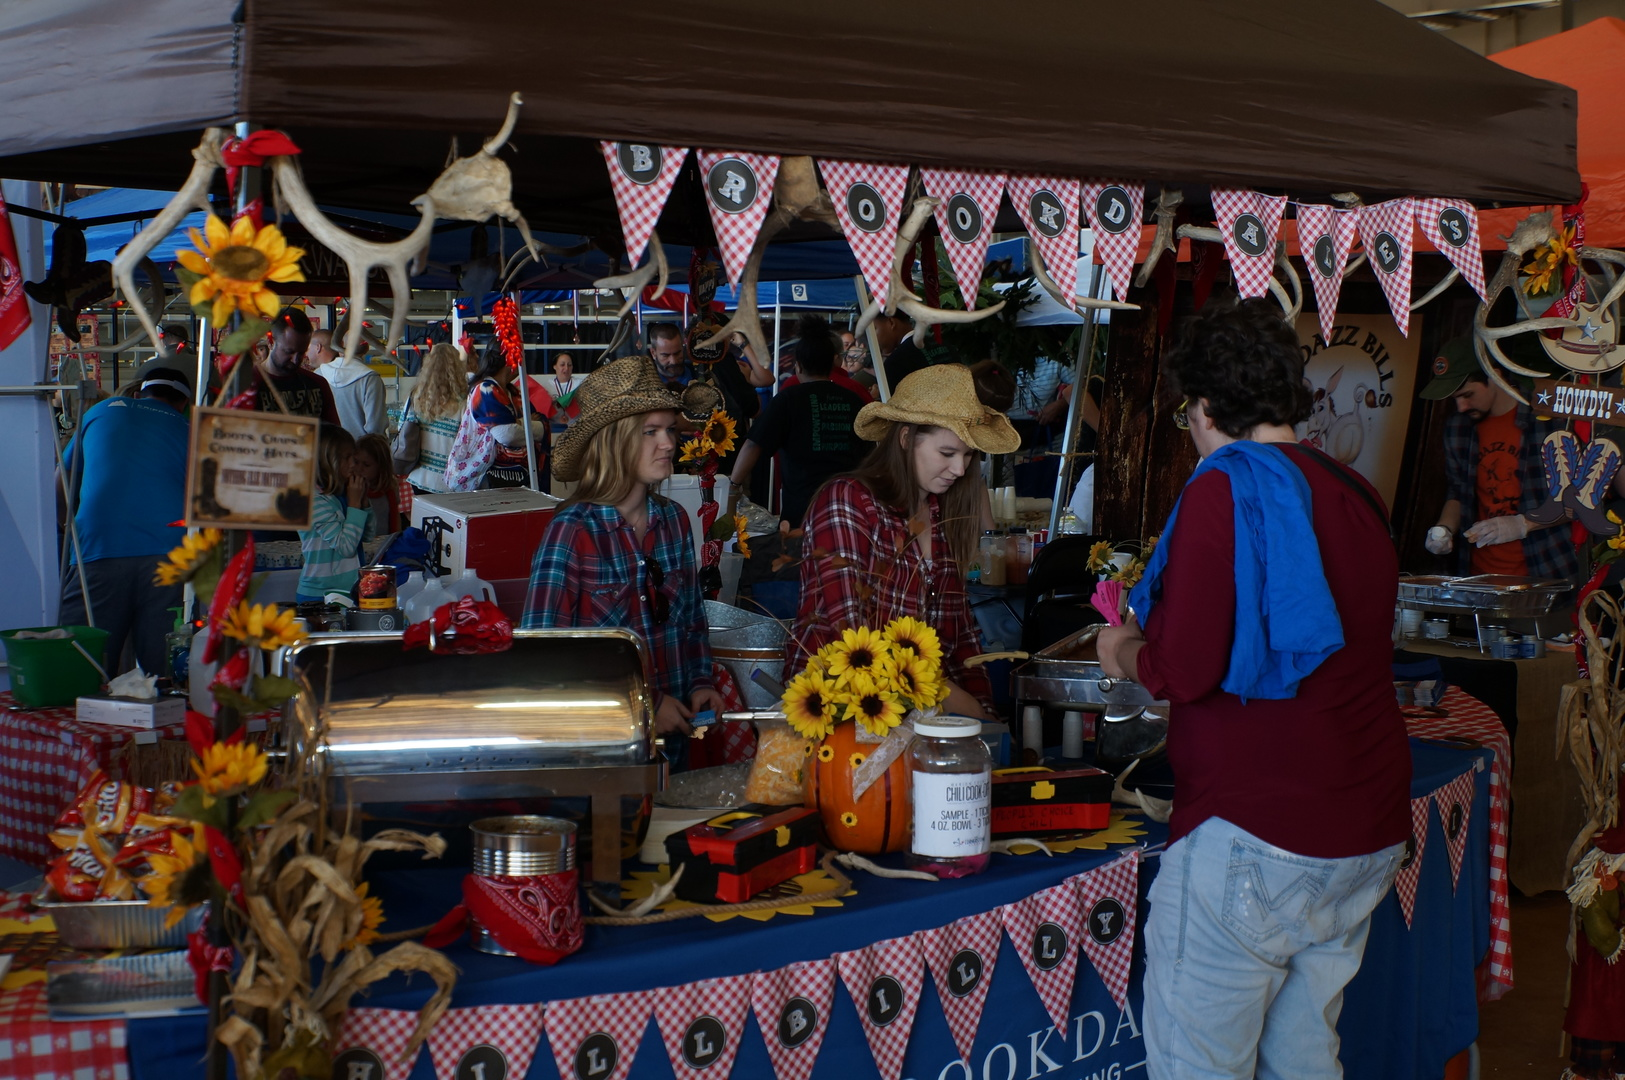 The 40th Annual Marion County Chili Cook-Off